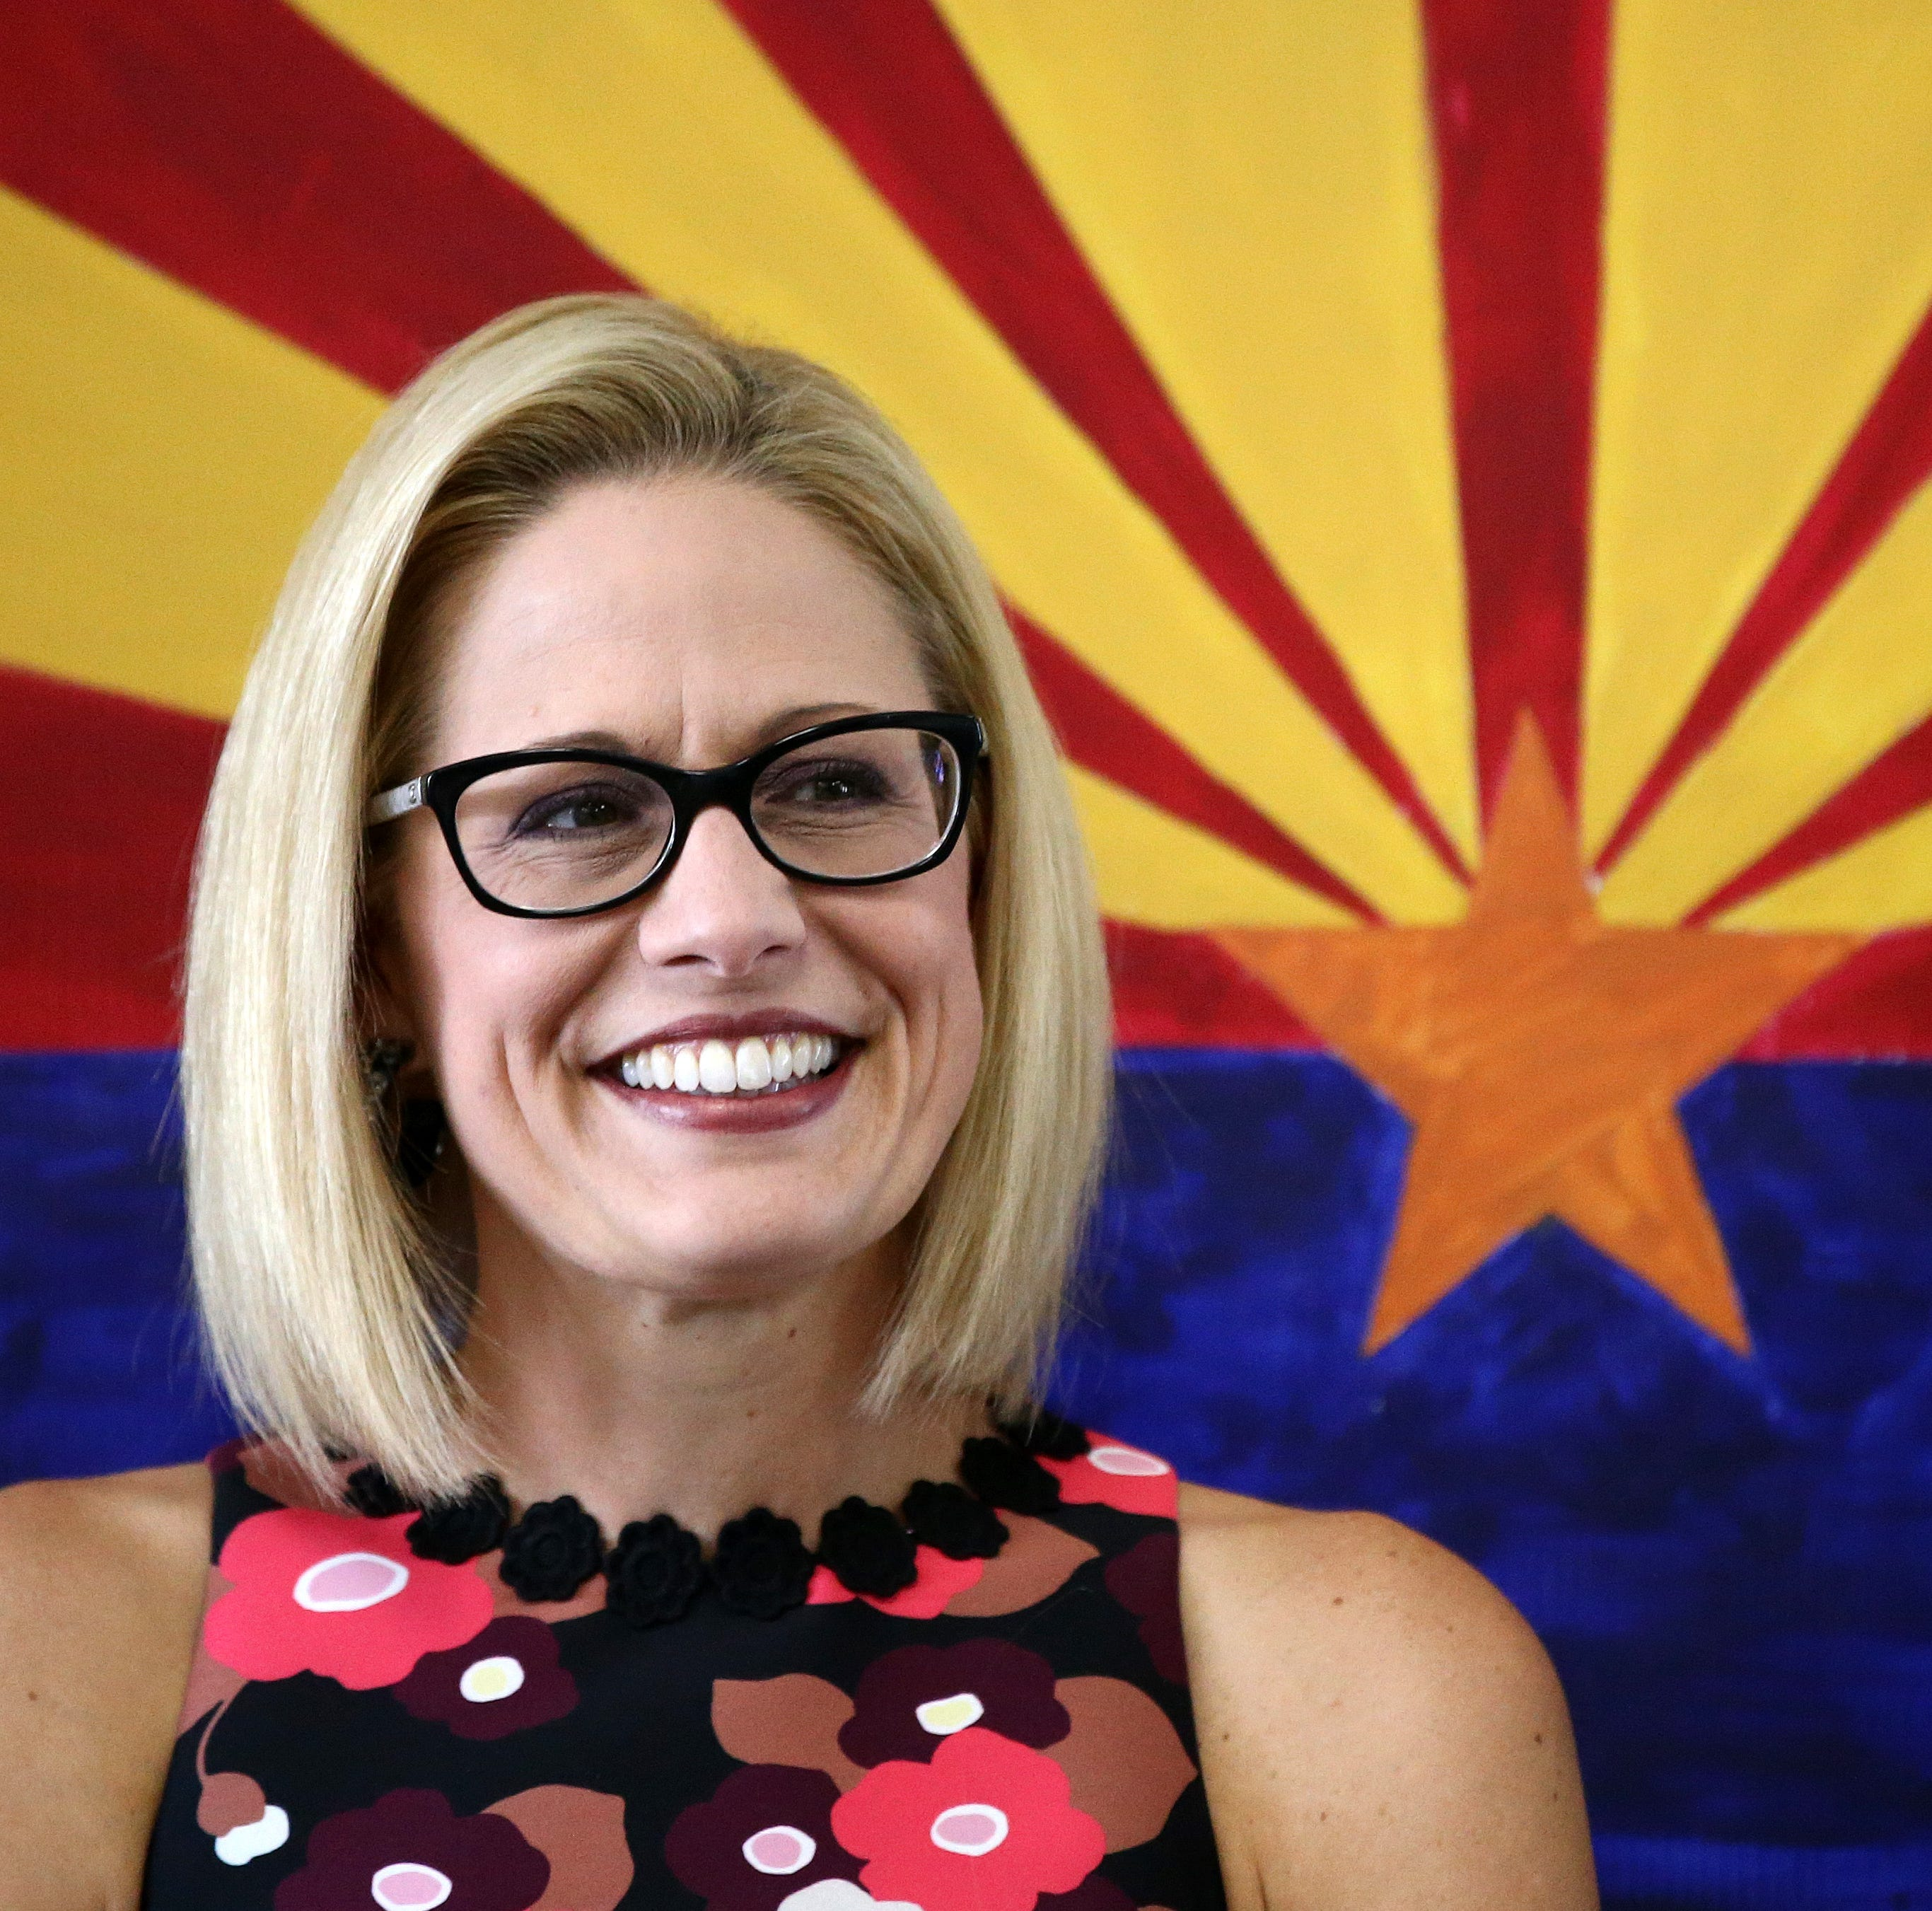 Arizona Democrats turned the state more purple in 2018. Will it last?